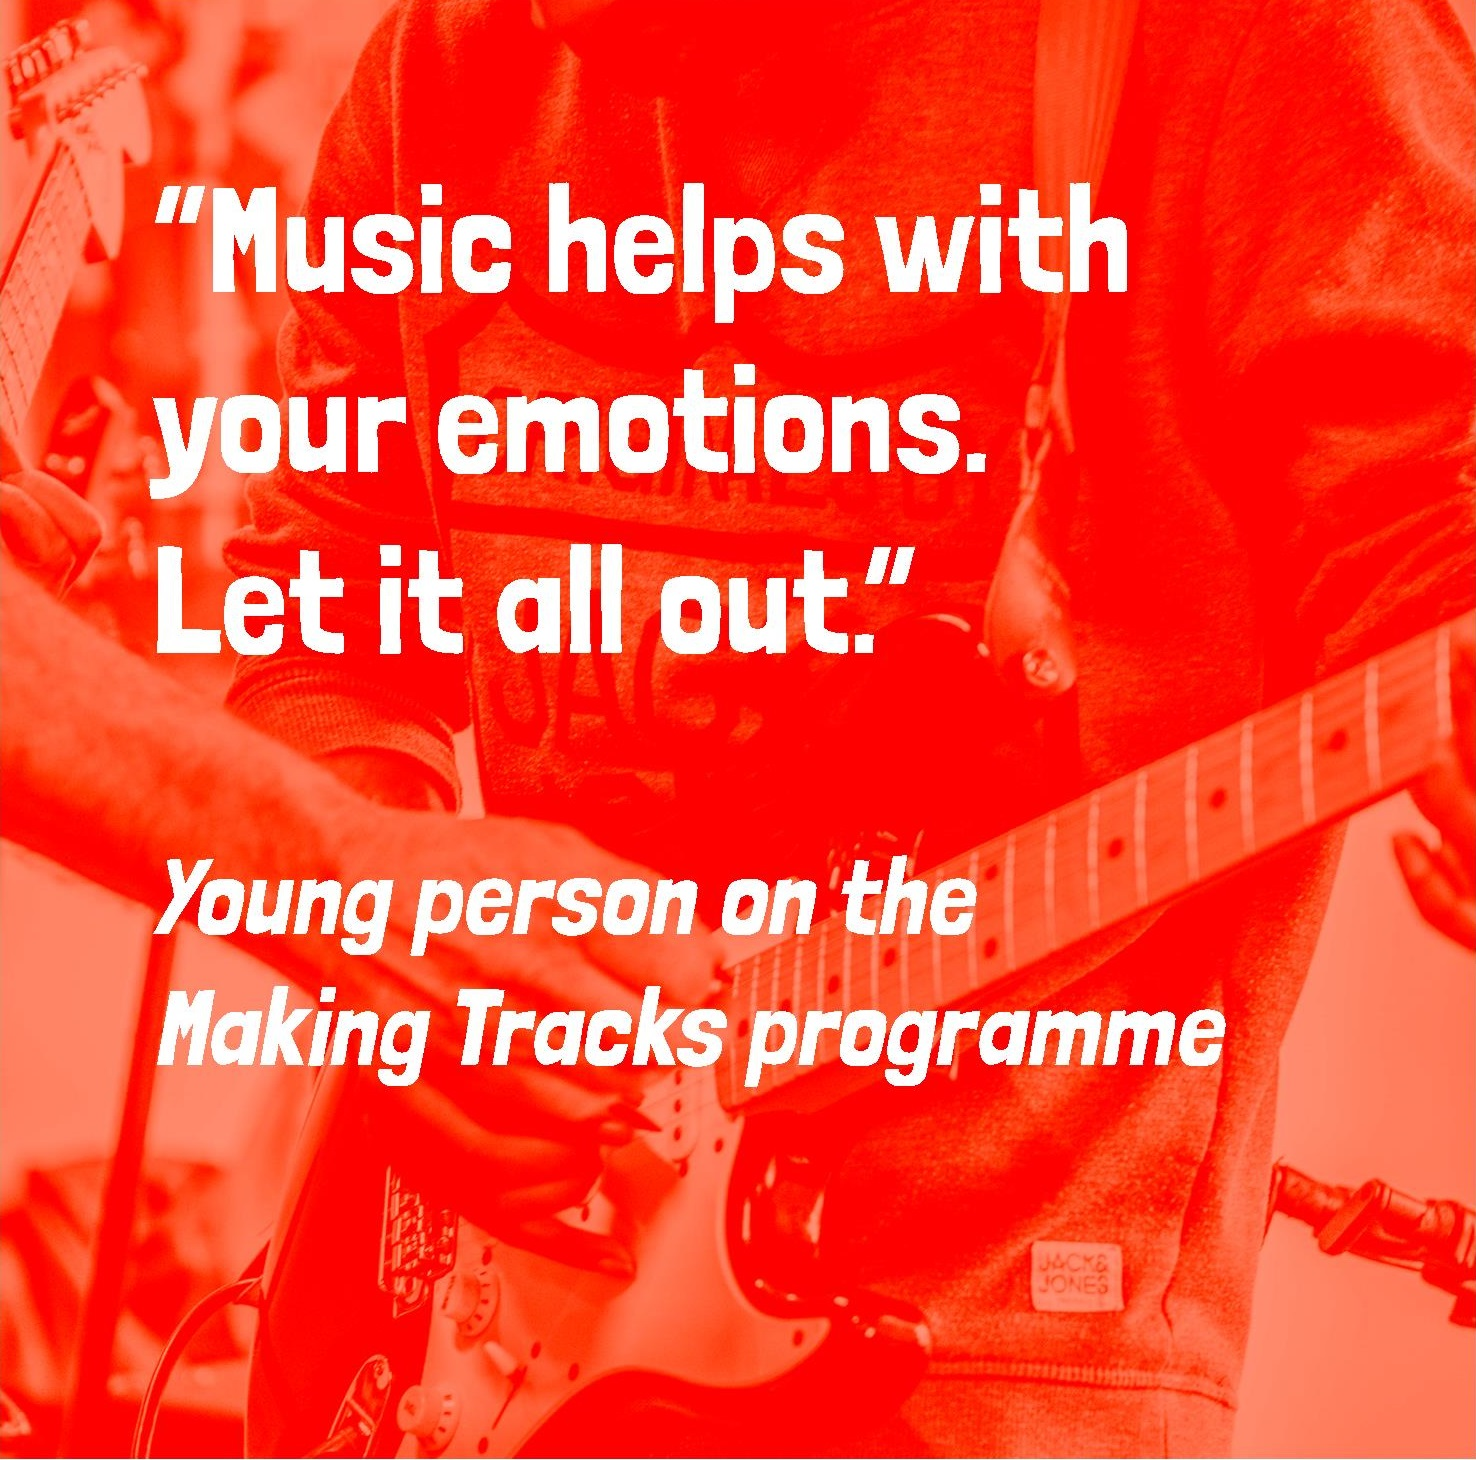 WMHD_Music helps with youremotions